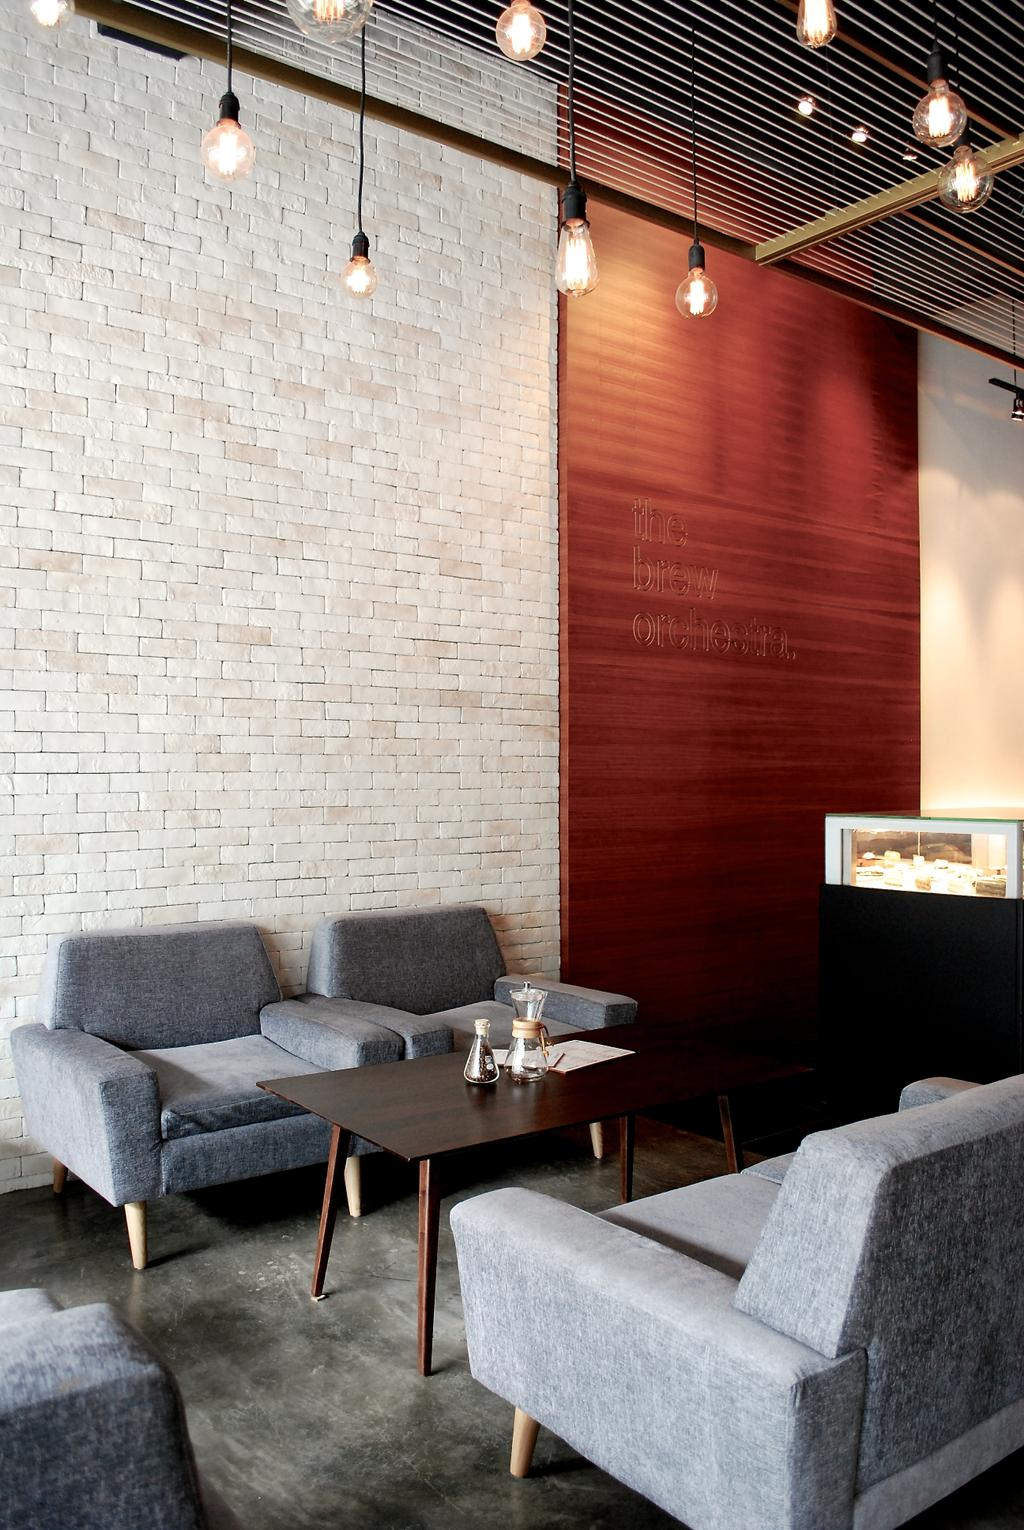 The Brew Orchestra, Commercial, Architect, EHKA Studio, Industrial, Couch, Furniture, Chair